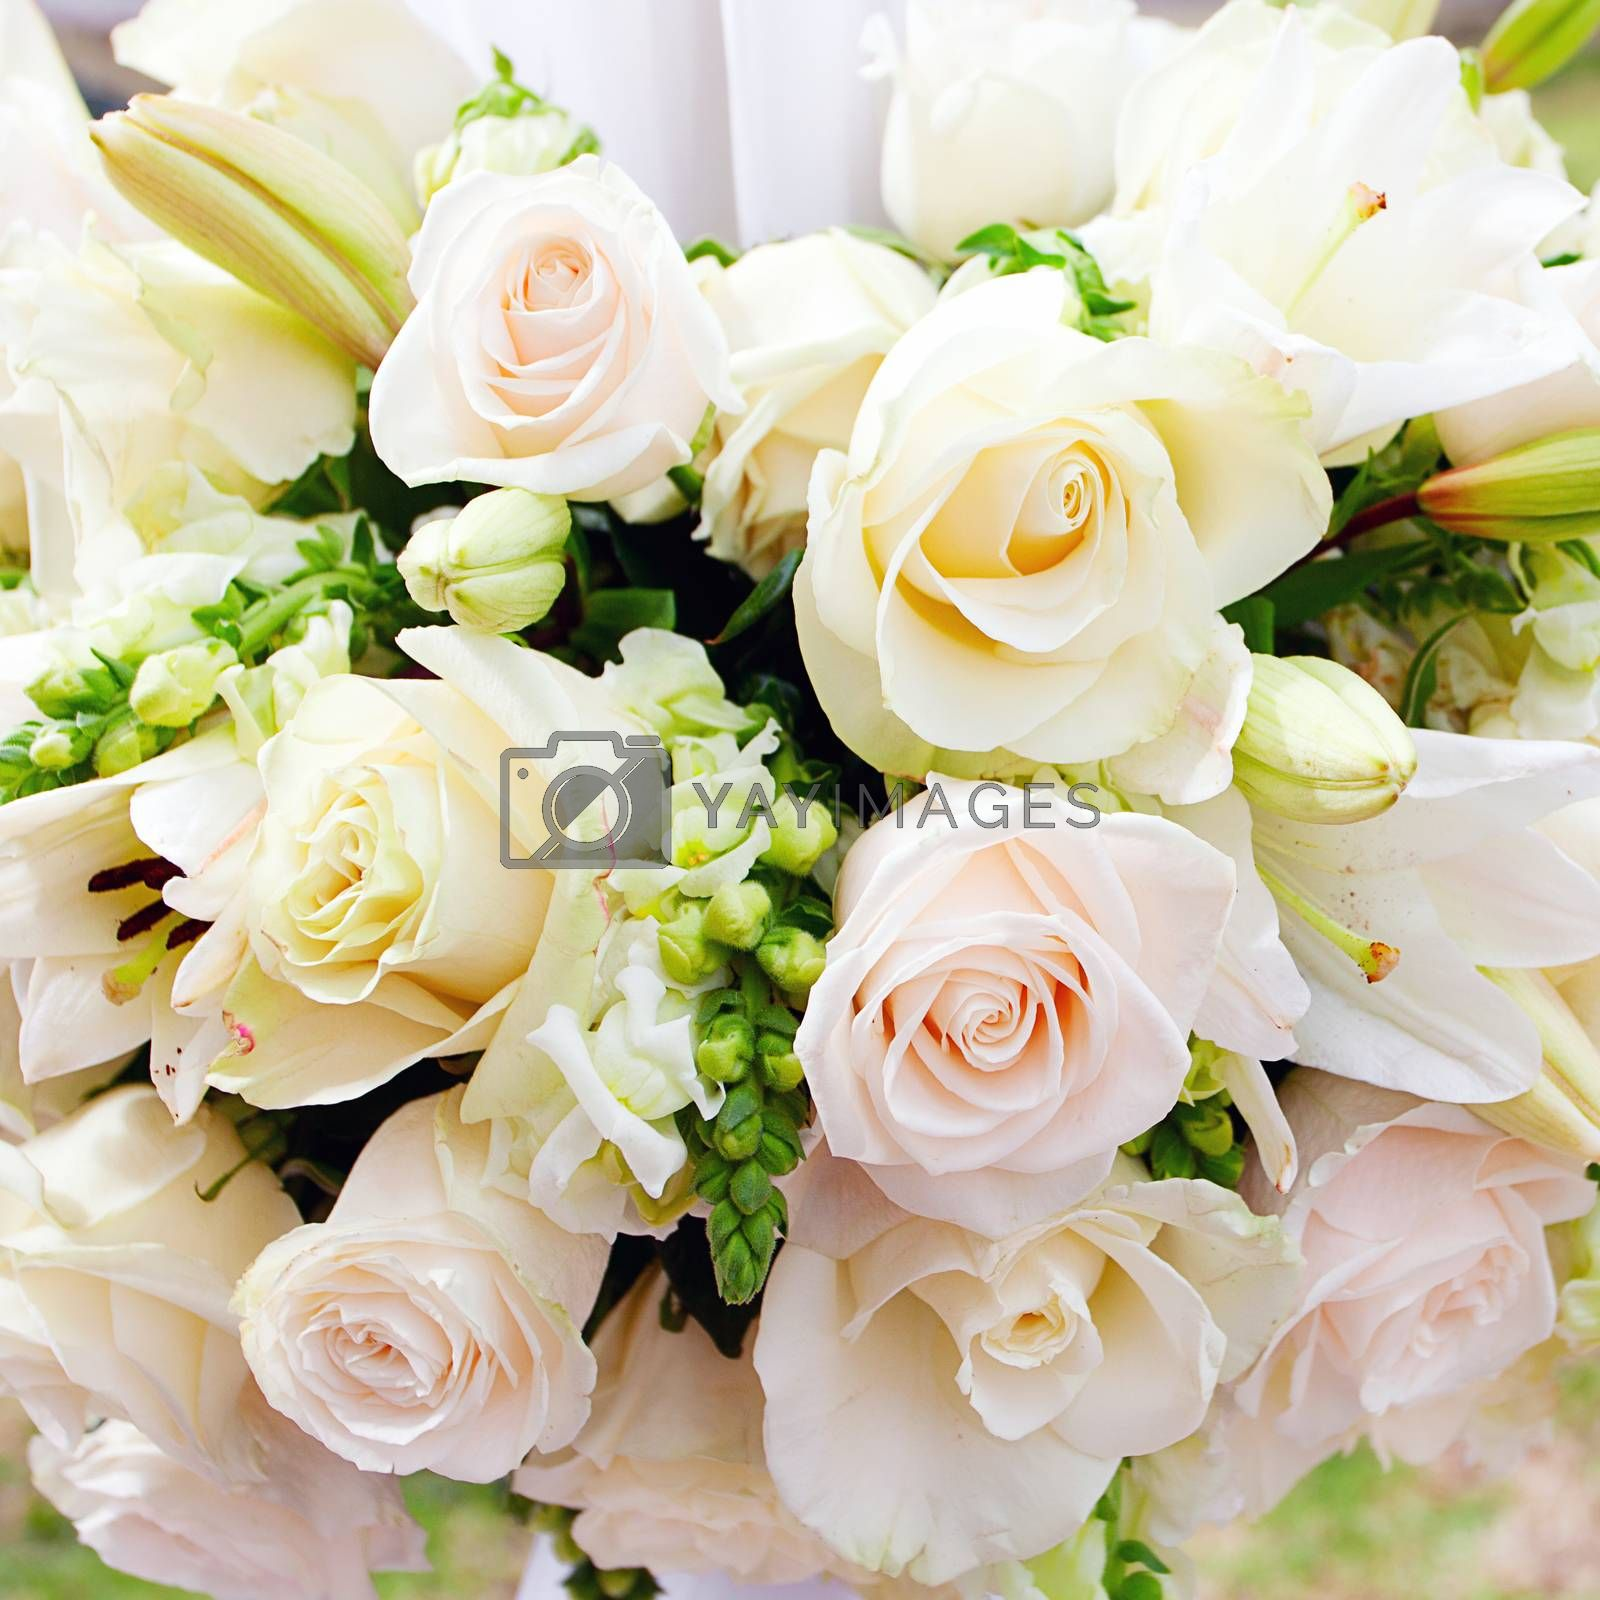 wedding marquee with bouquets of roses